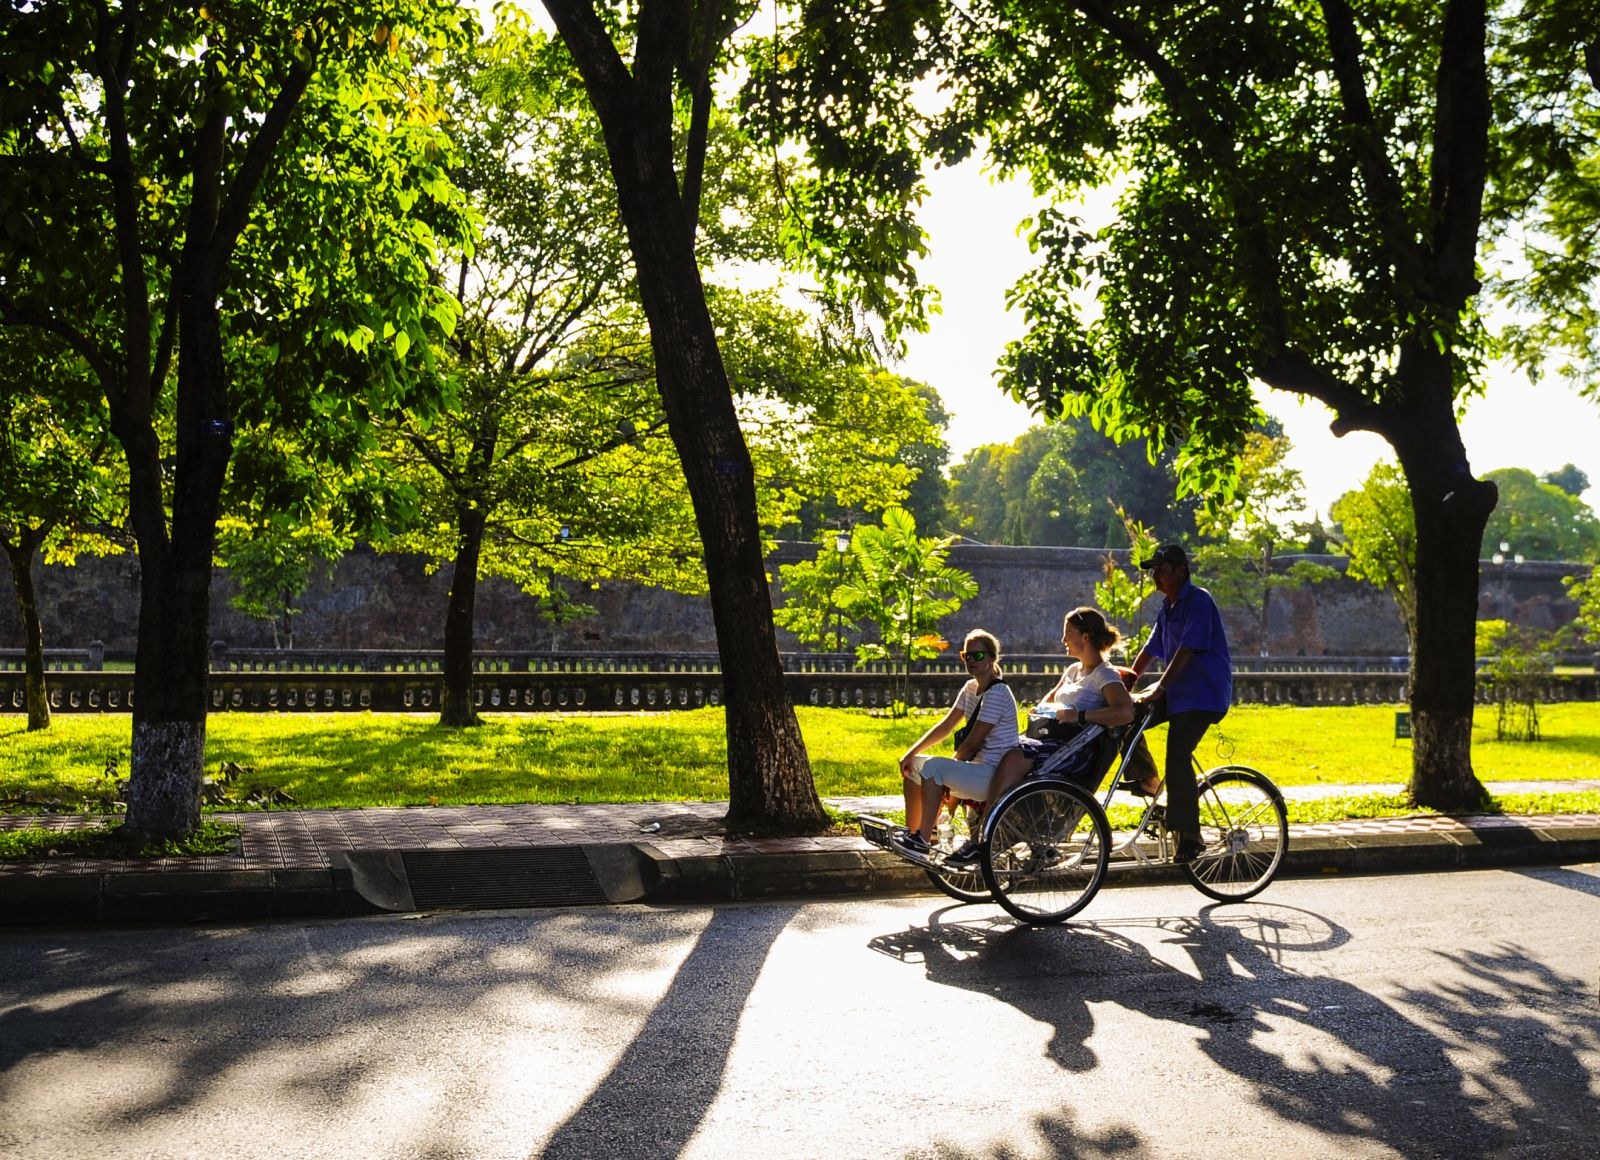 Foreign tourists on Hue's cyclos, admiring the autumn sun